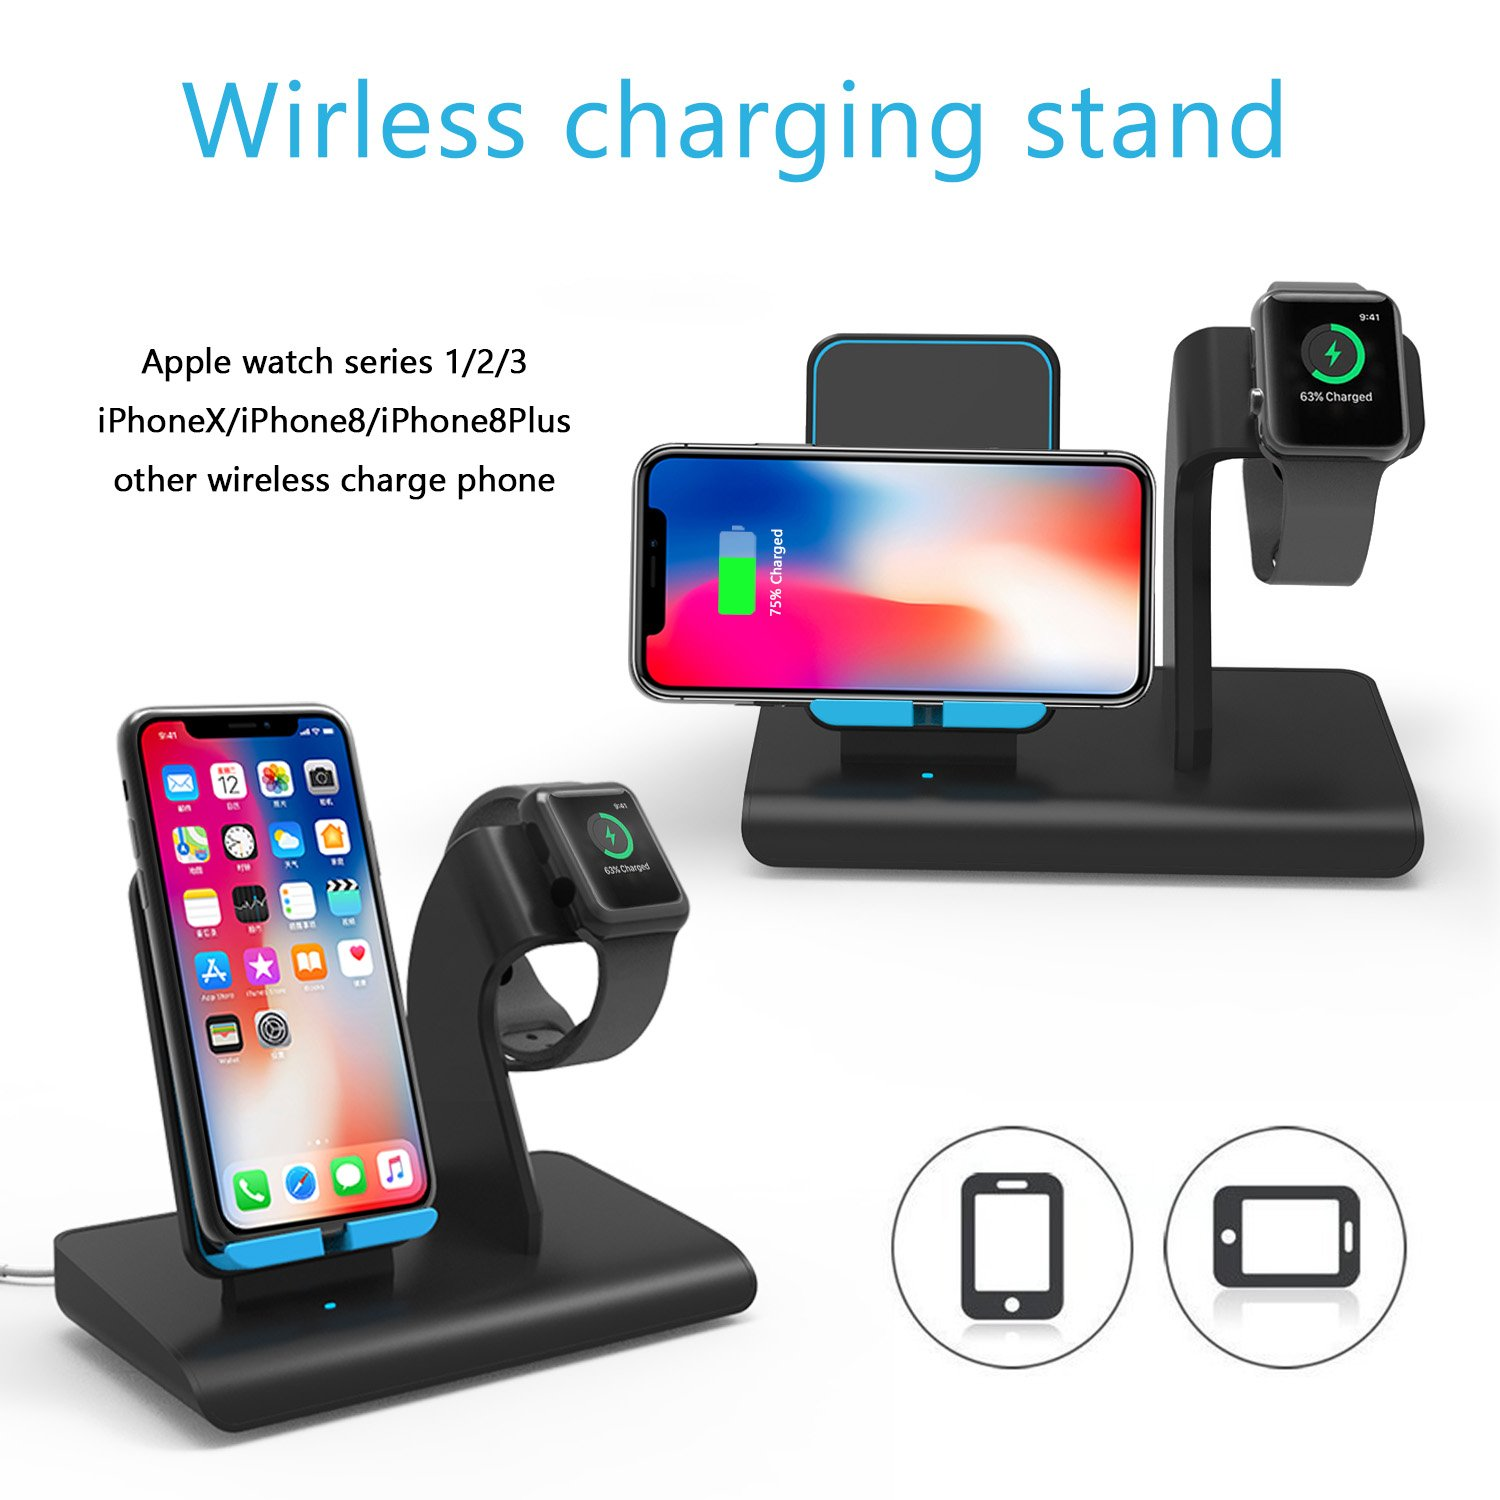 Charger Stand For Apple Watch Wireless Charging Dock Iphone X Station Holder Support Xs Max Xr 8 Plus Samsung Galaxy S9